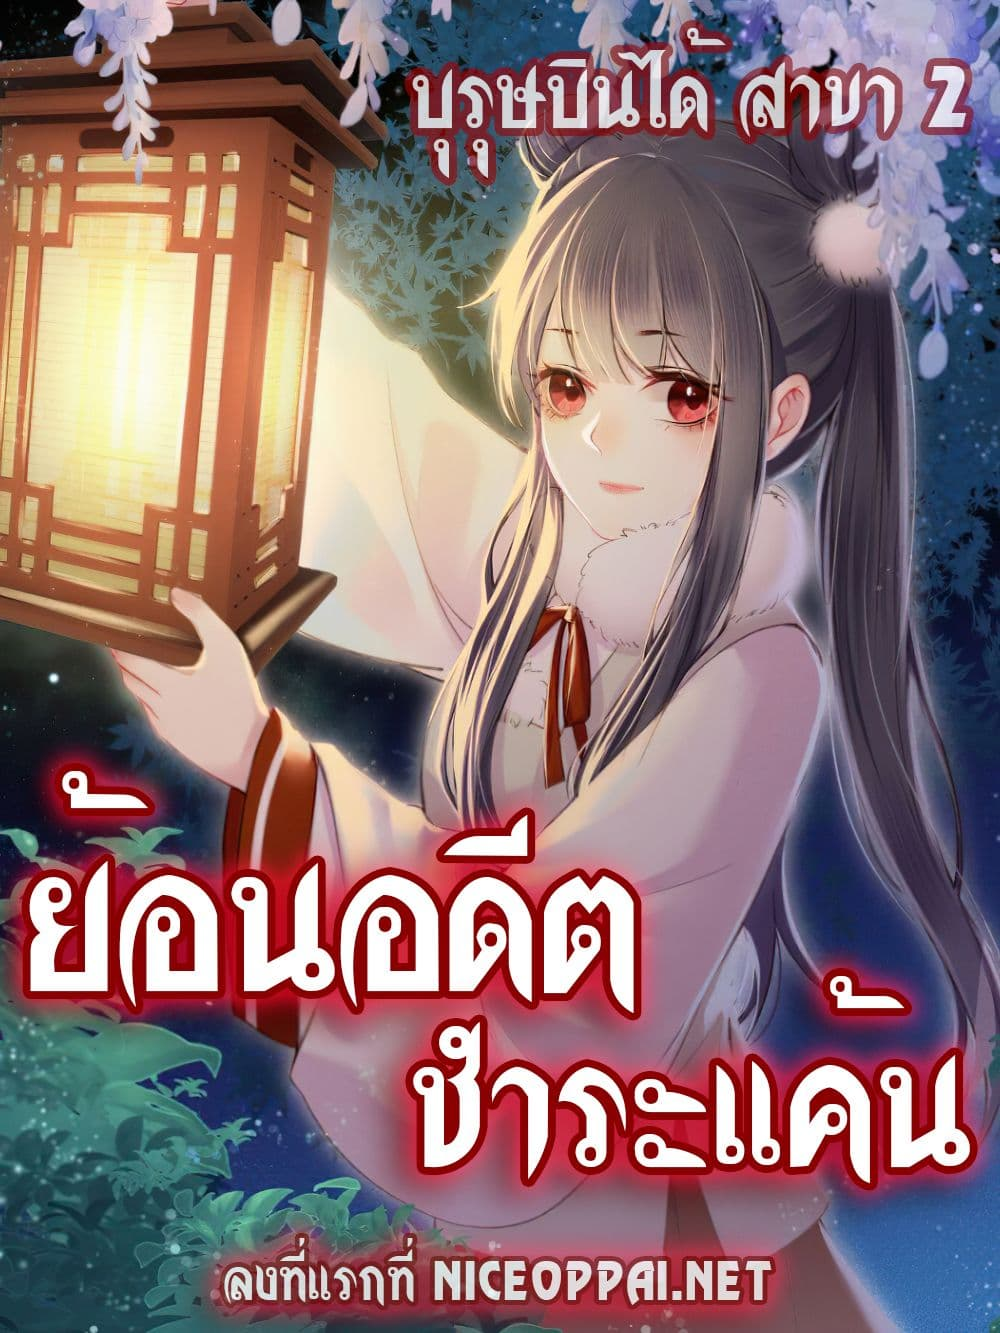 The Rebirth Daughter is not Good-ตอนที่ 7